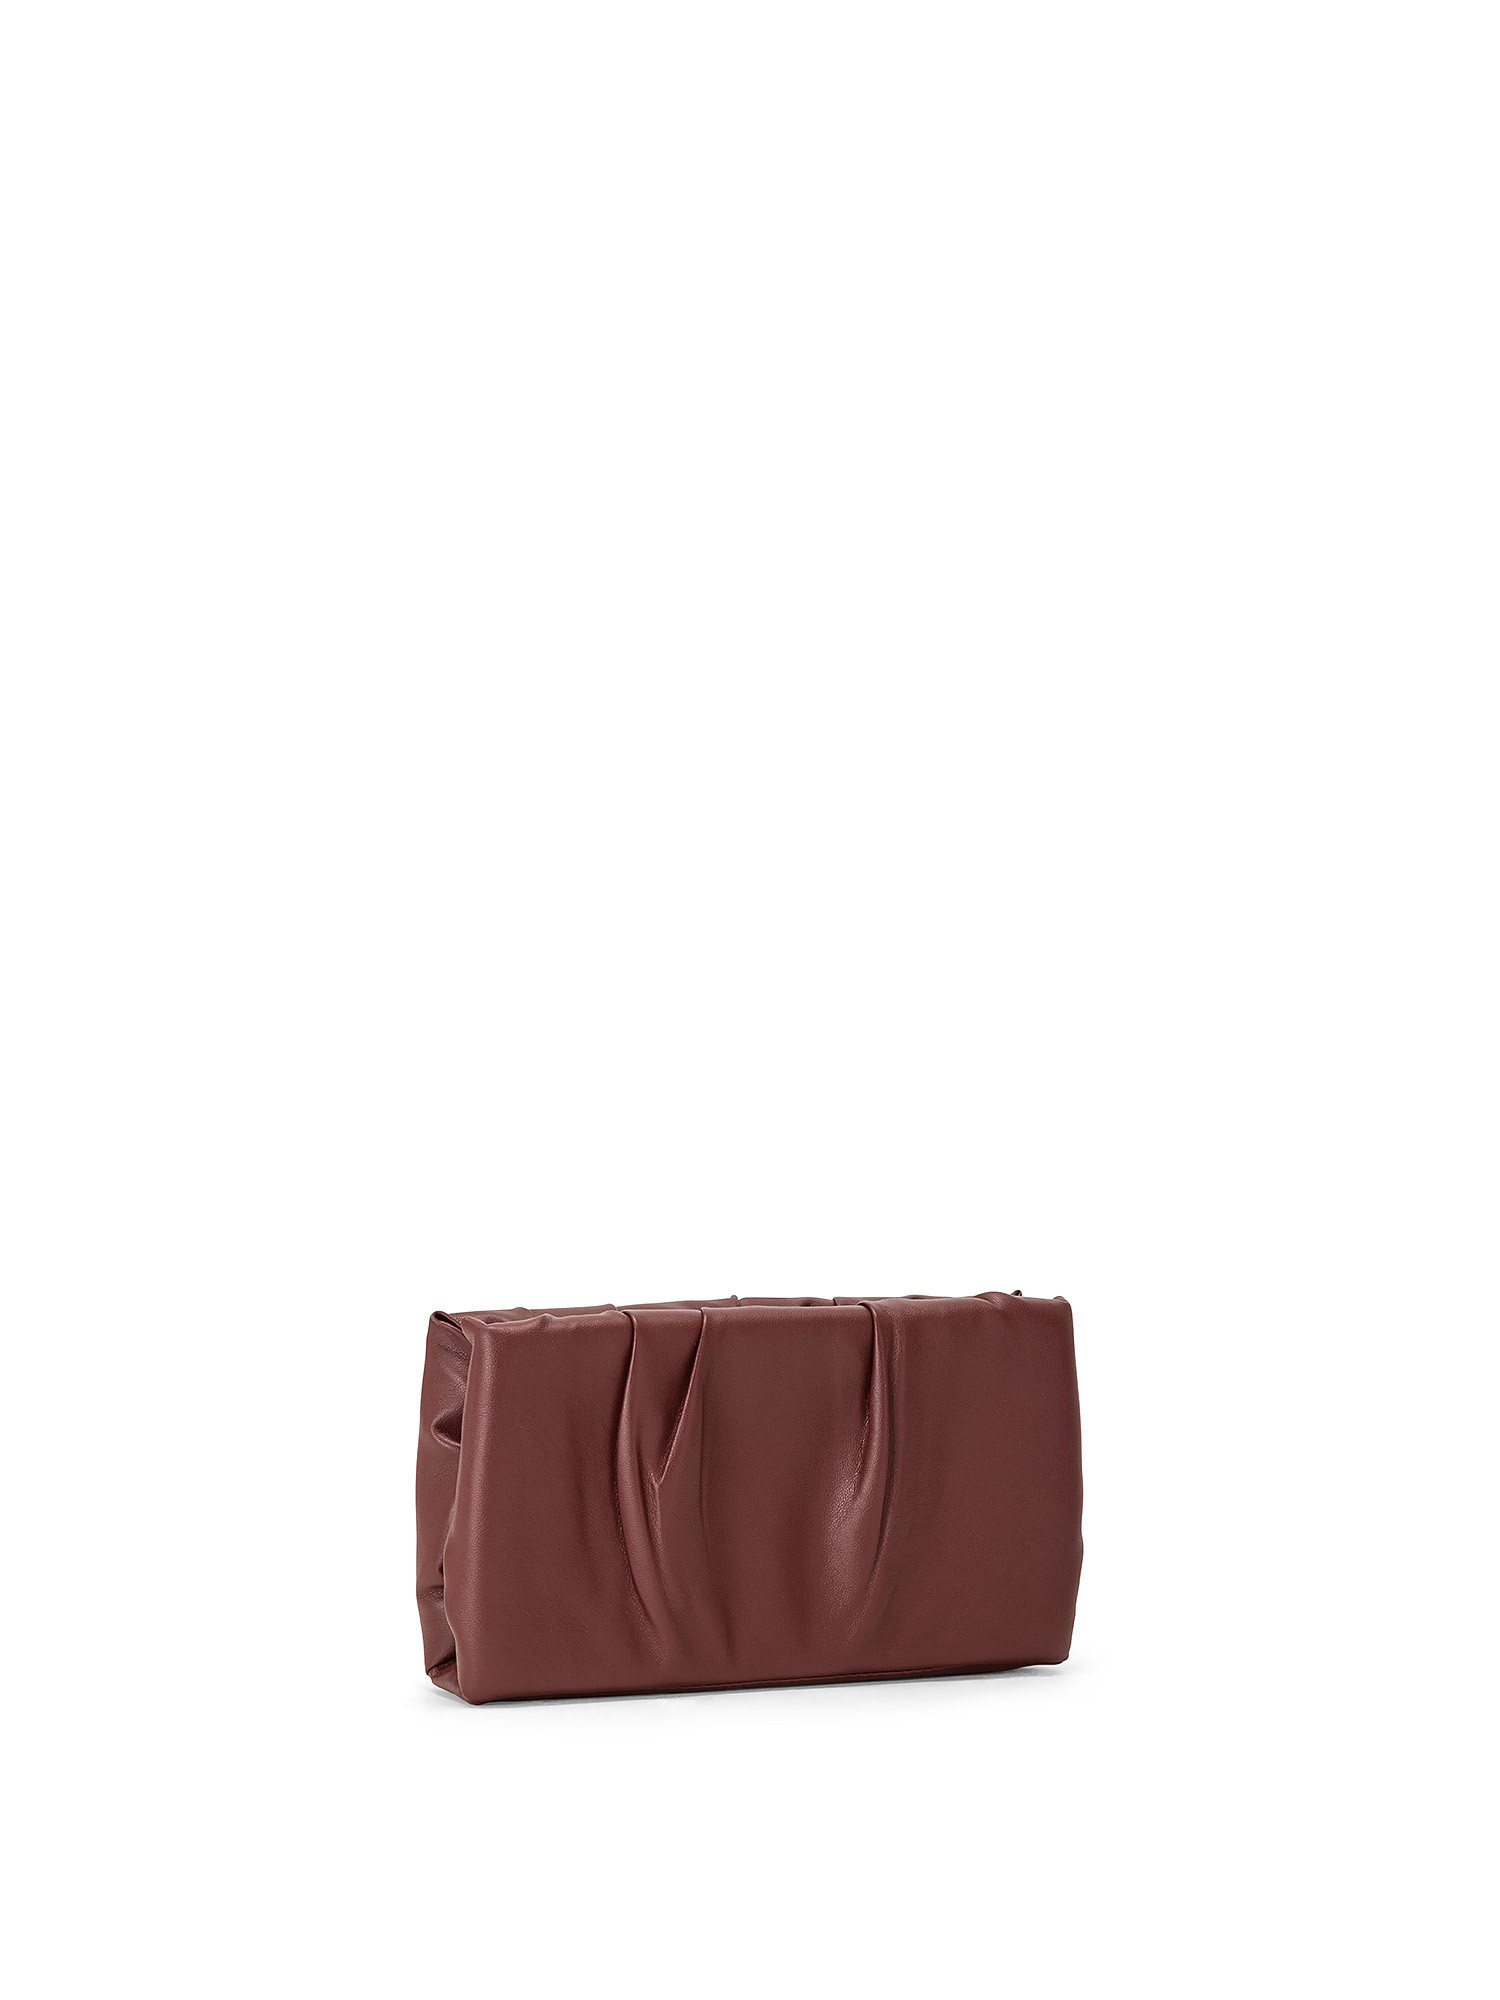 Ruched Frame Clutch, Rosso ciliegia, large image number 1